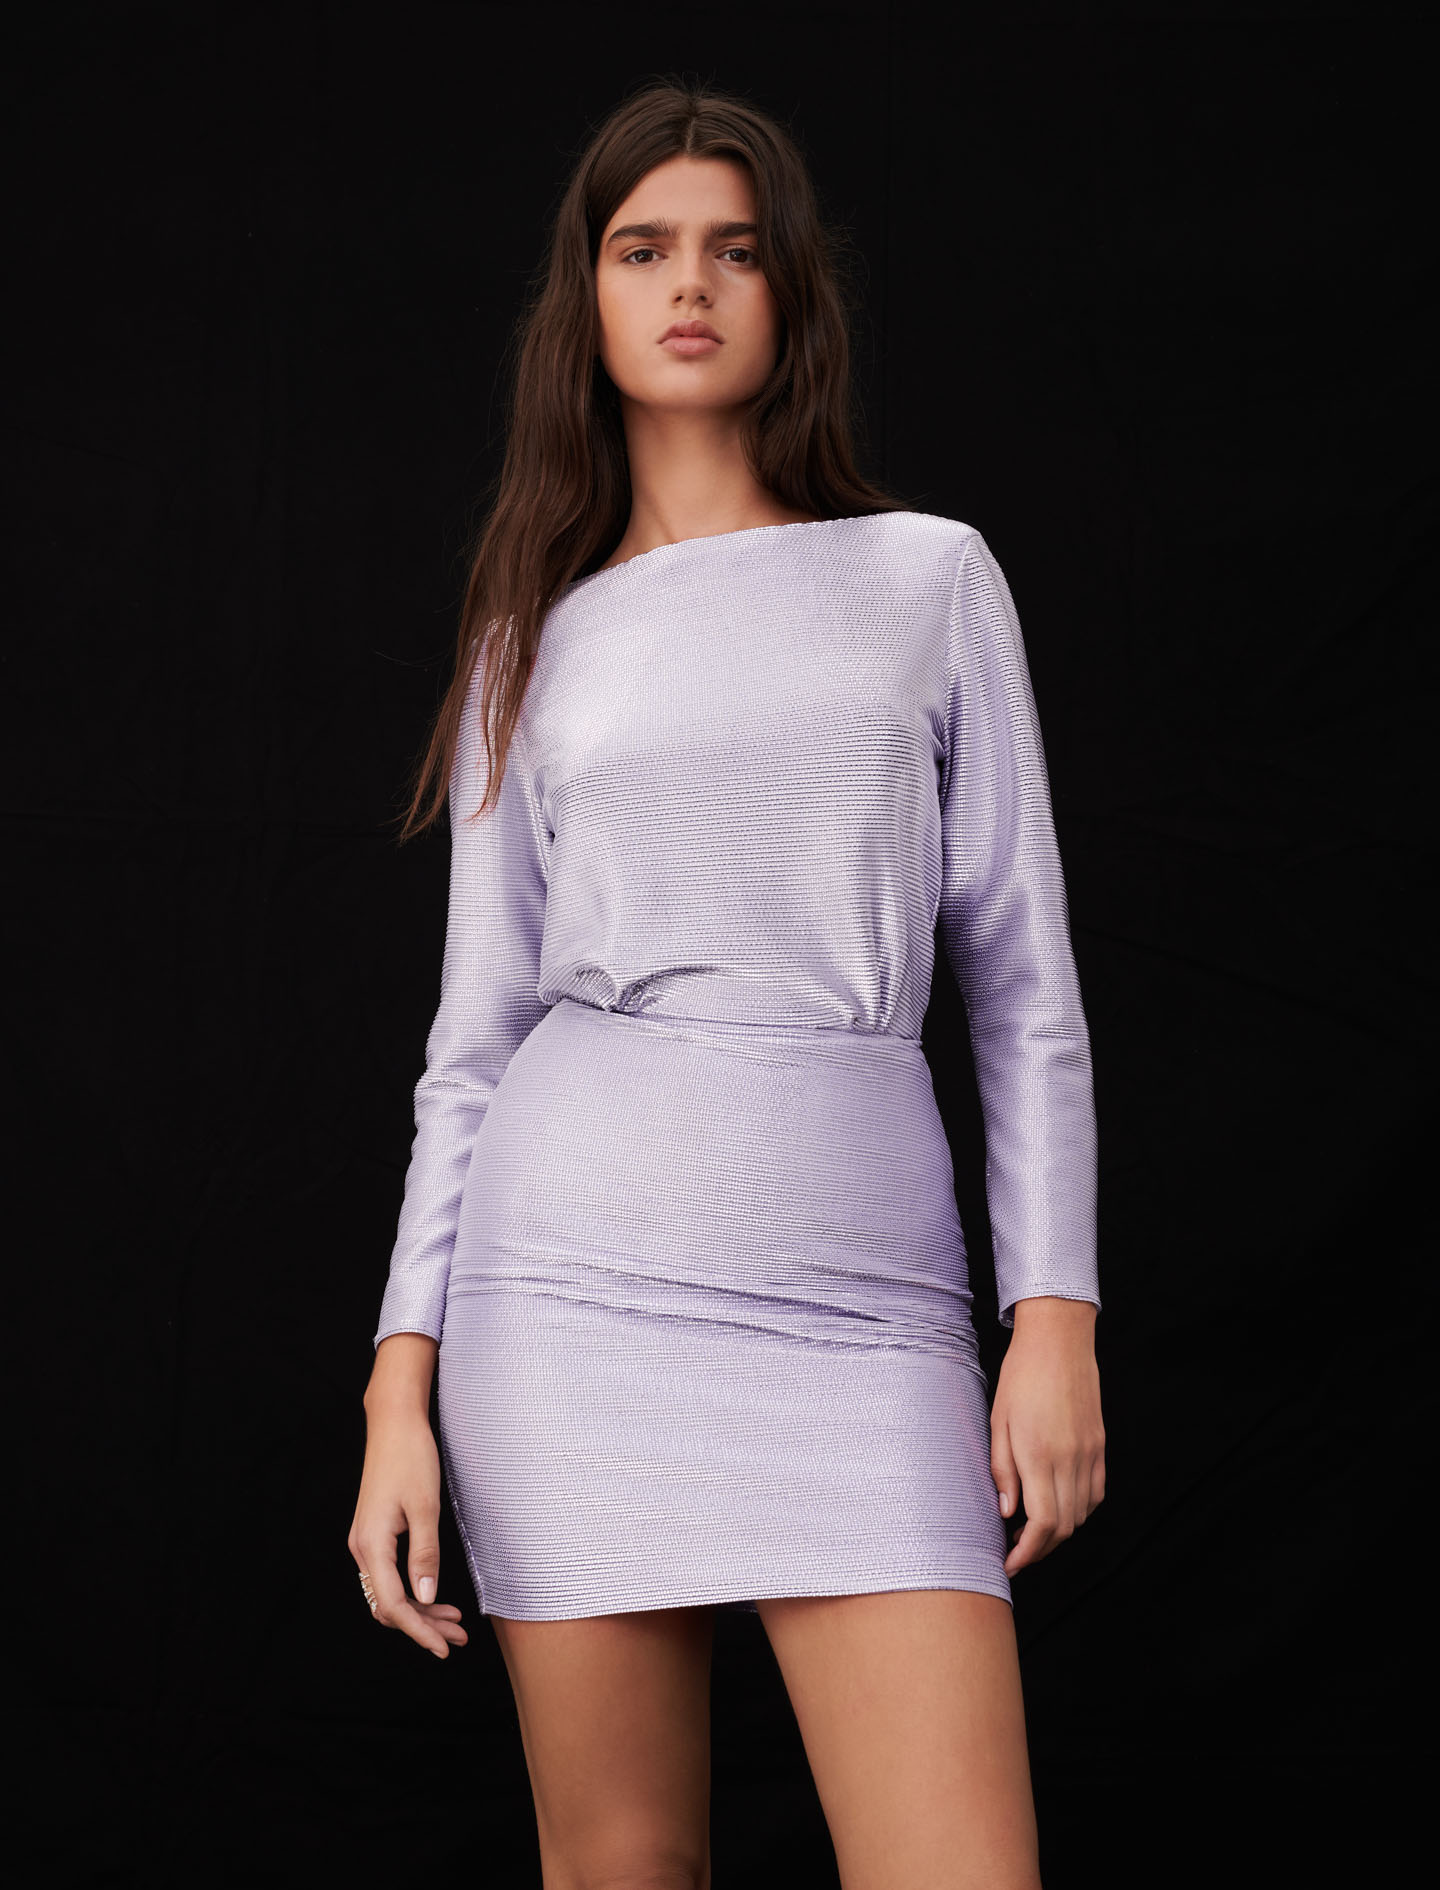 Purple dress with long sleeves and low back by maje paris